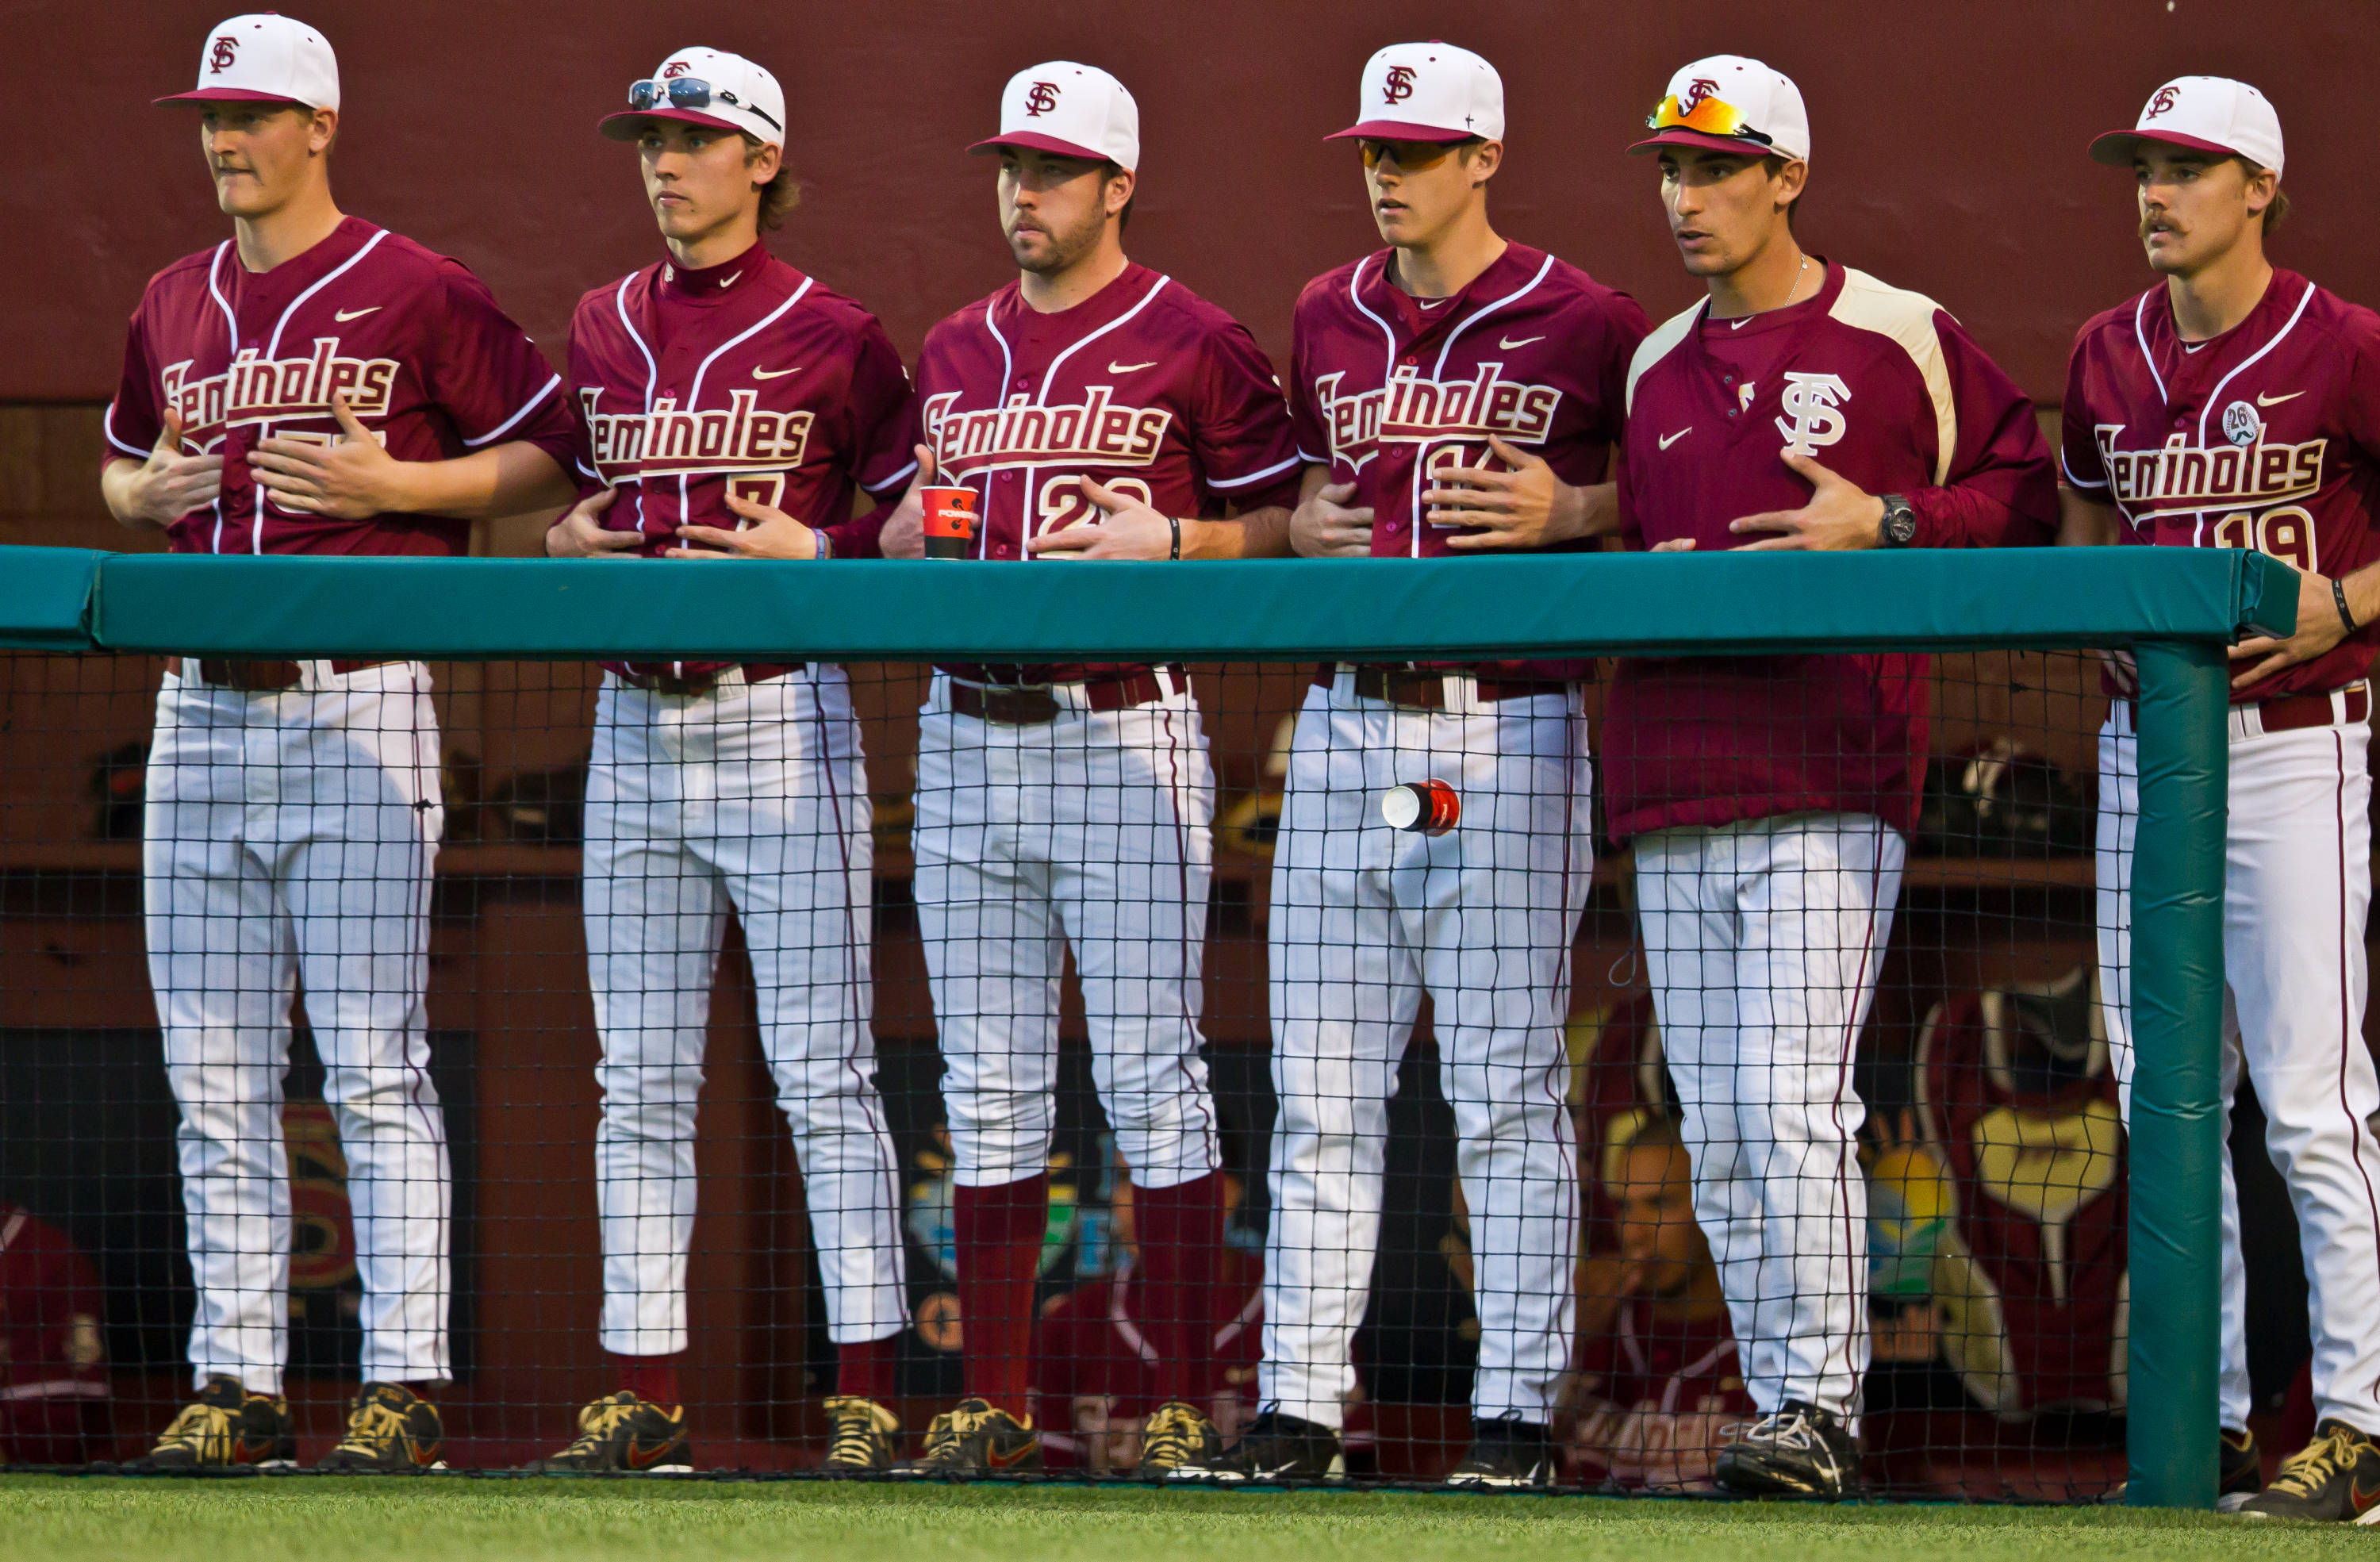 The Seminoles look on from the dugout.